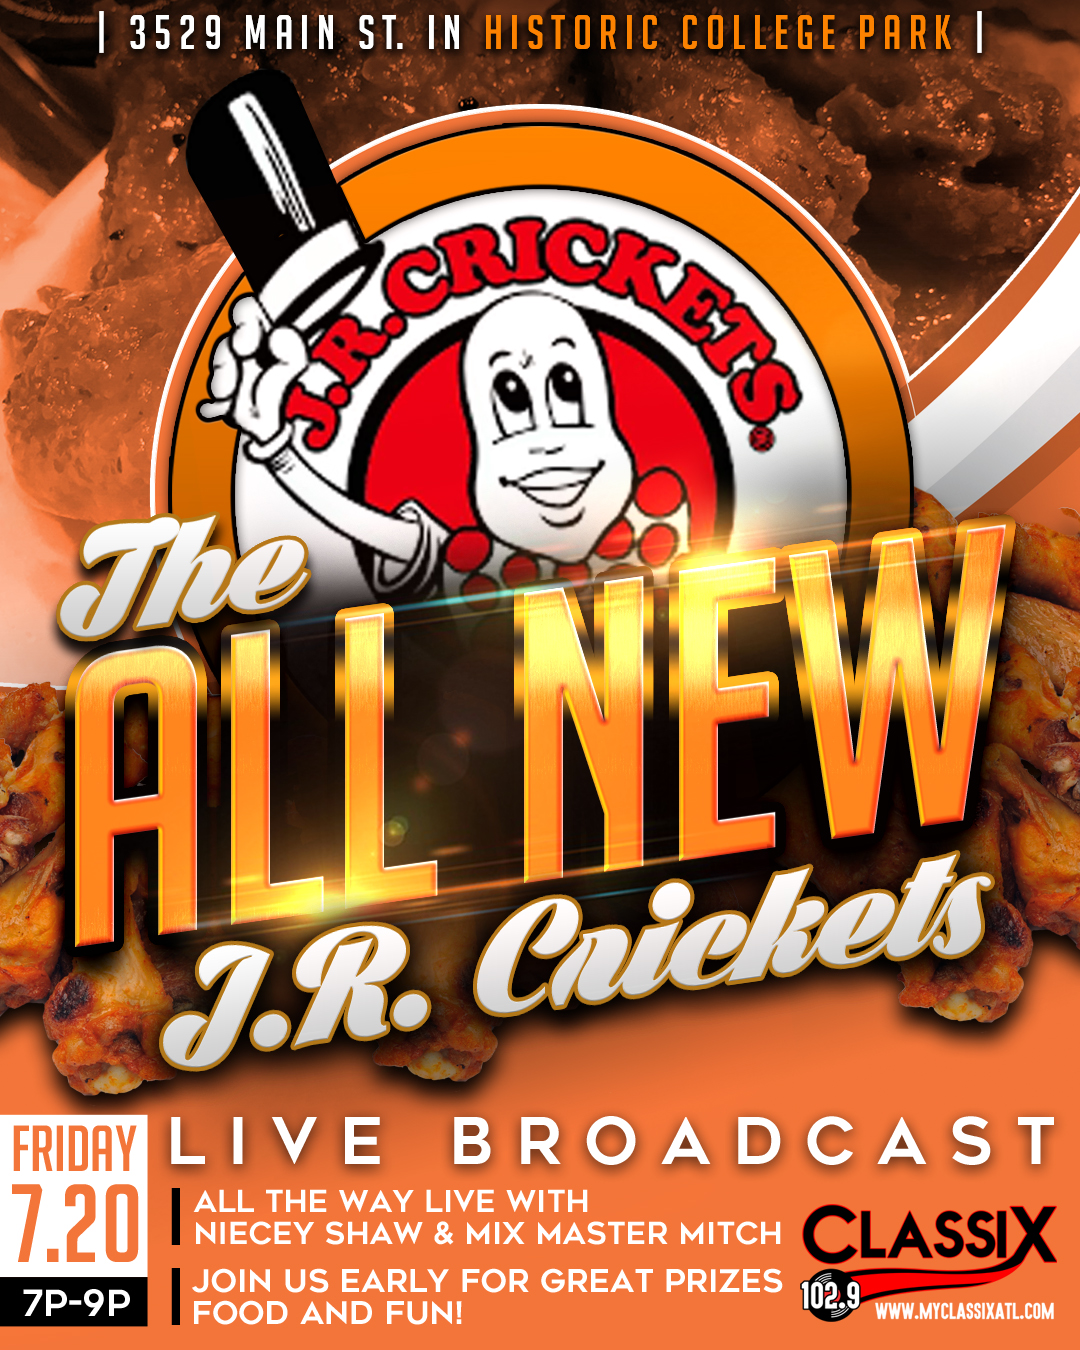 J.R. Crickets Live Broadcast